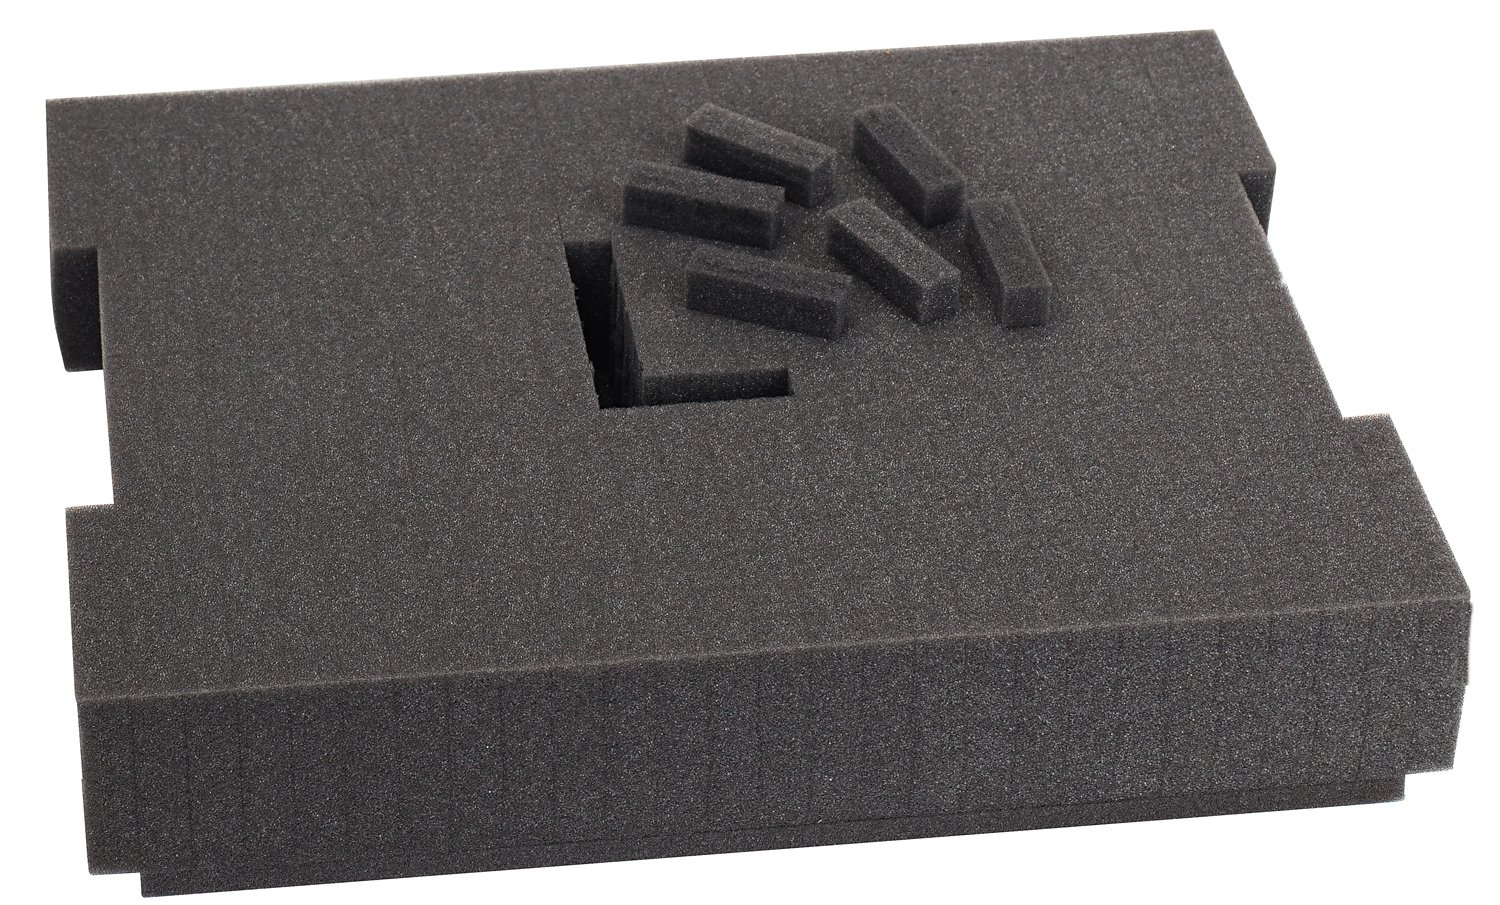 Bosch Foam-201 Pre-Cut Foam Insert 136 for use with L-Boxx2, Part of Click and Go Mobile Transport System by Bosch